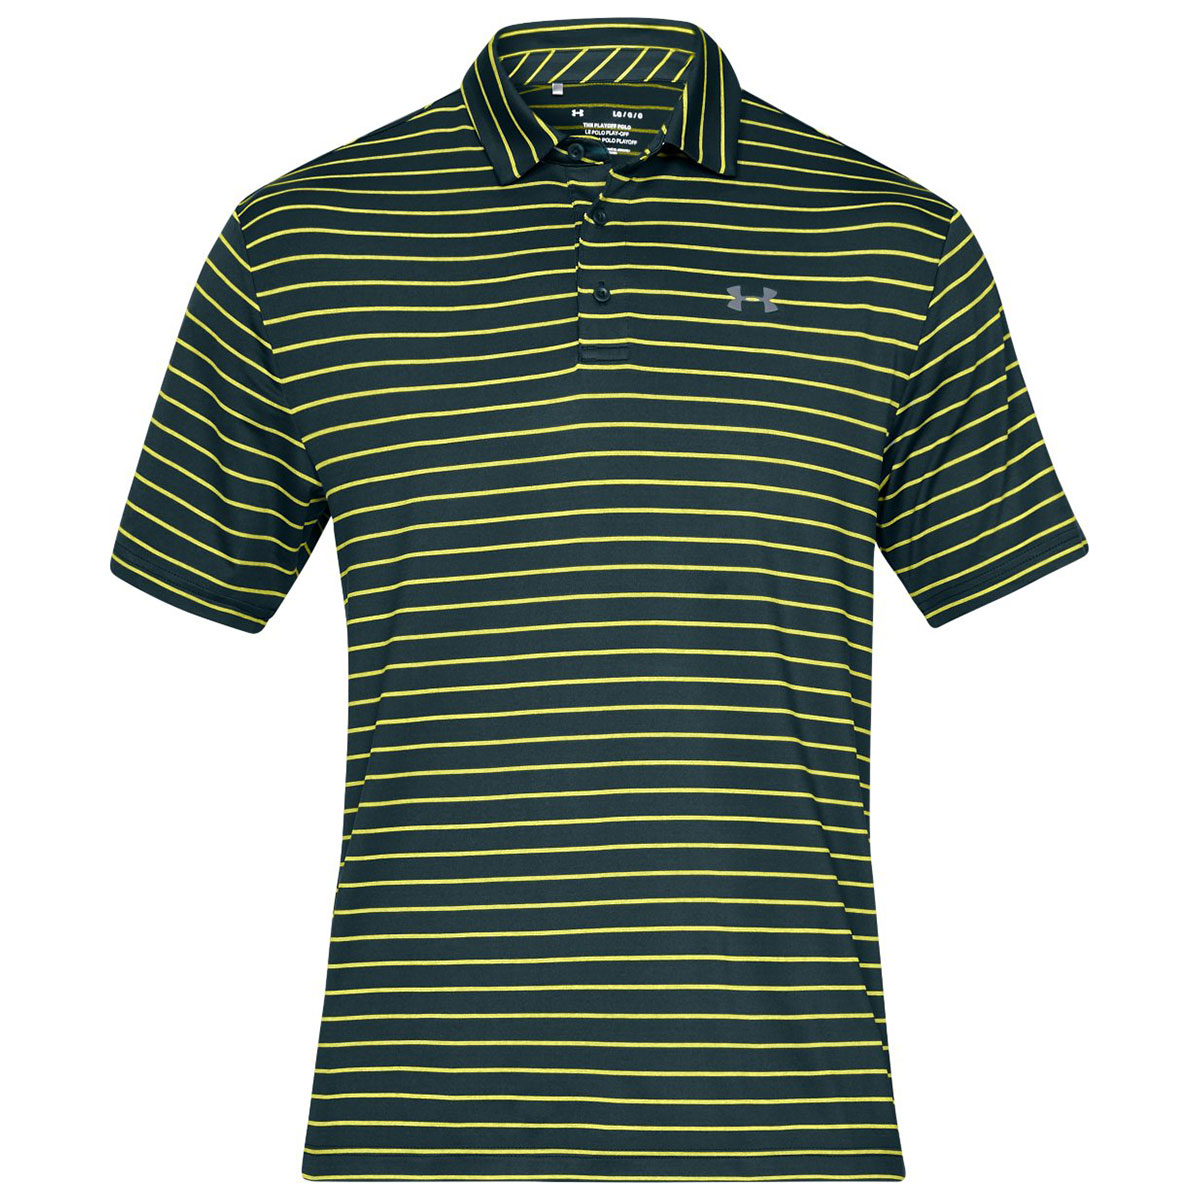 Under-Armour-Mens-2019-Playoff-Polo-2-0-Breathable-Light-Stretch-Polo-Shirt thumbnail 36